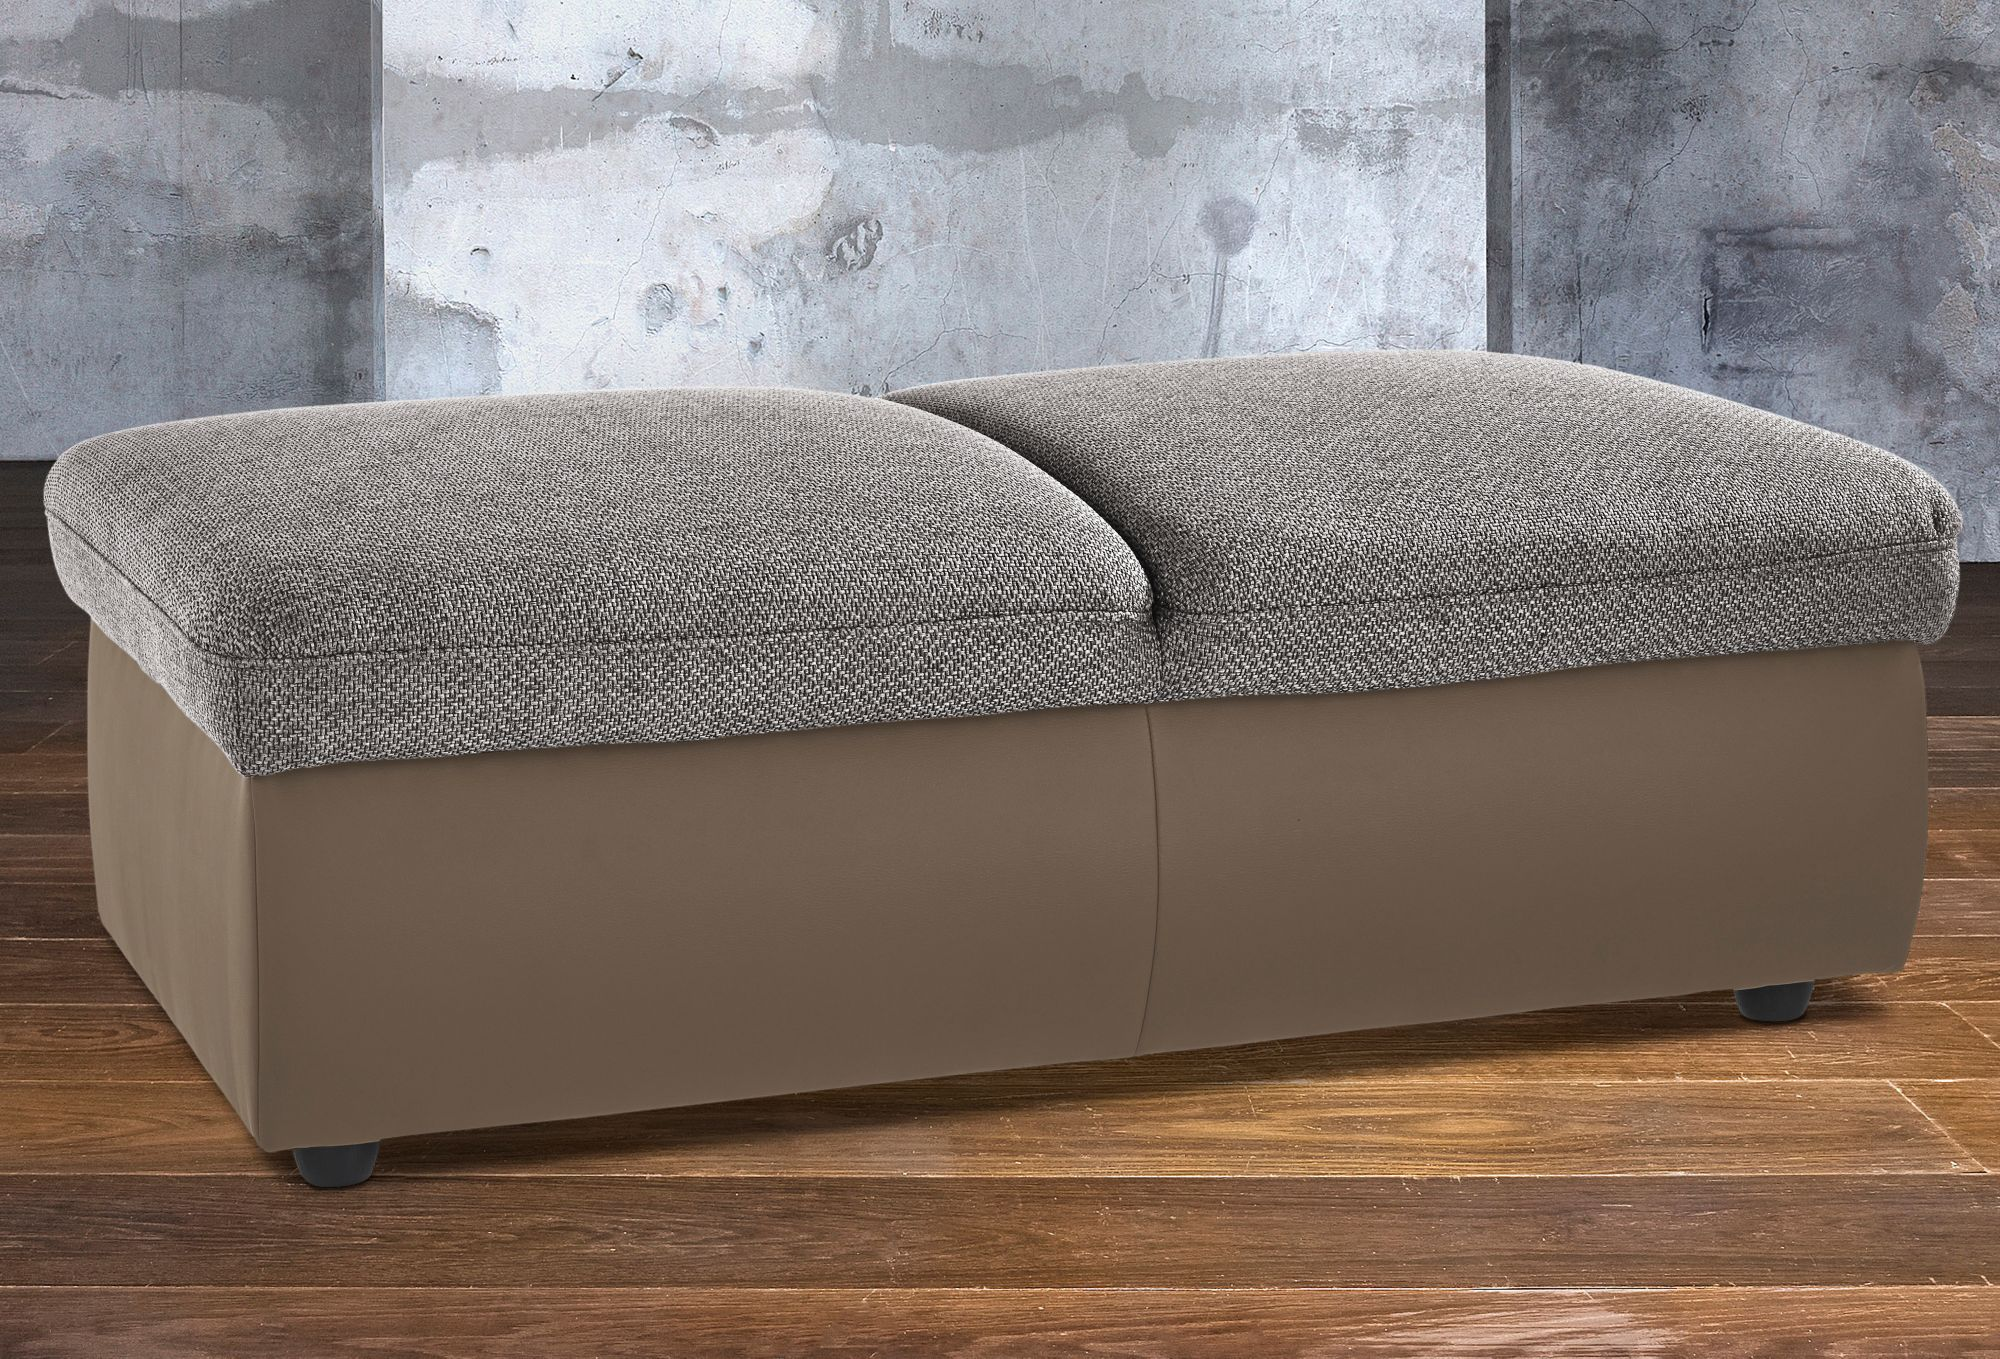 CITY SOFA Hocker, City Sofa